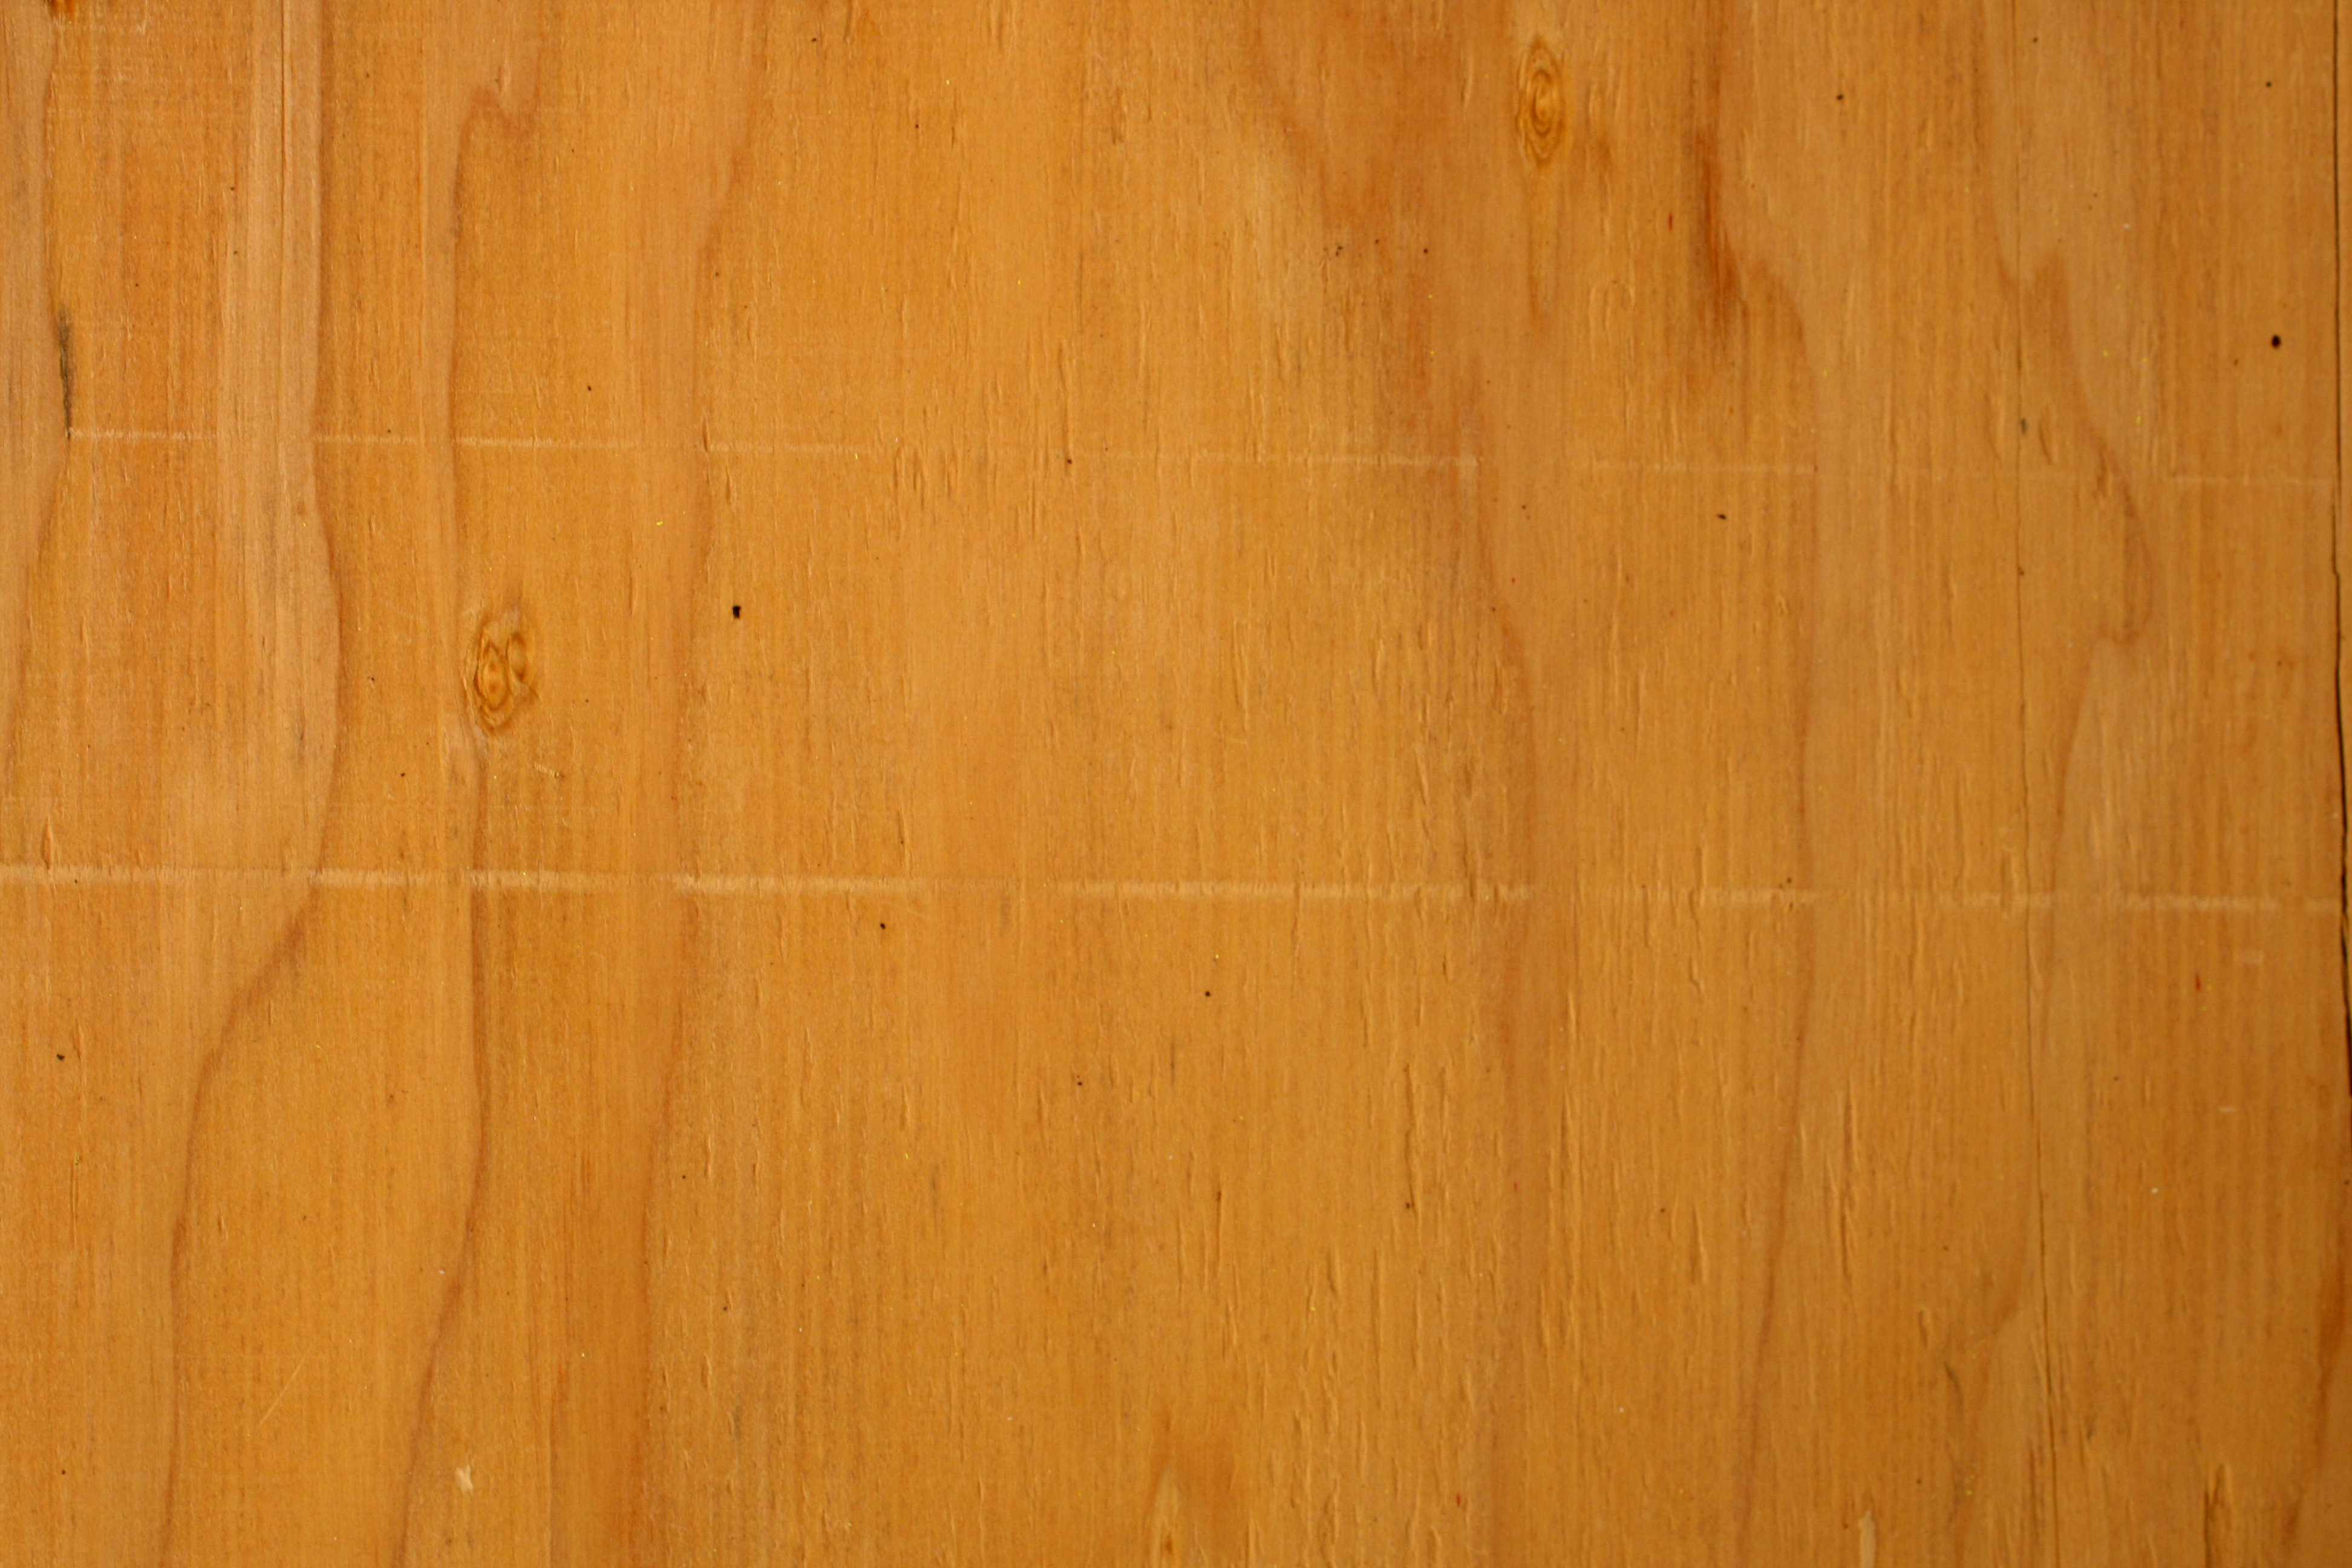 Plywood Close Up Texture with Vertical Wood Grain Picture ...